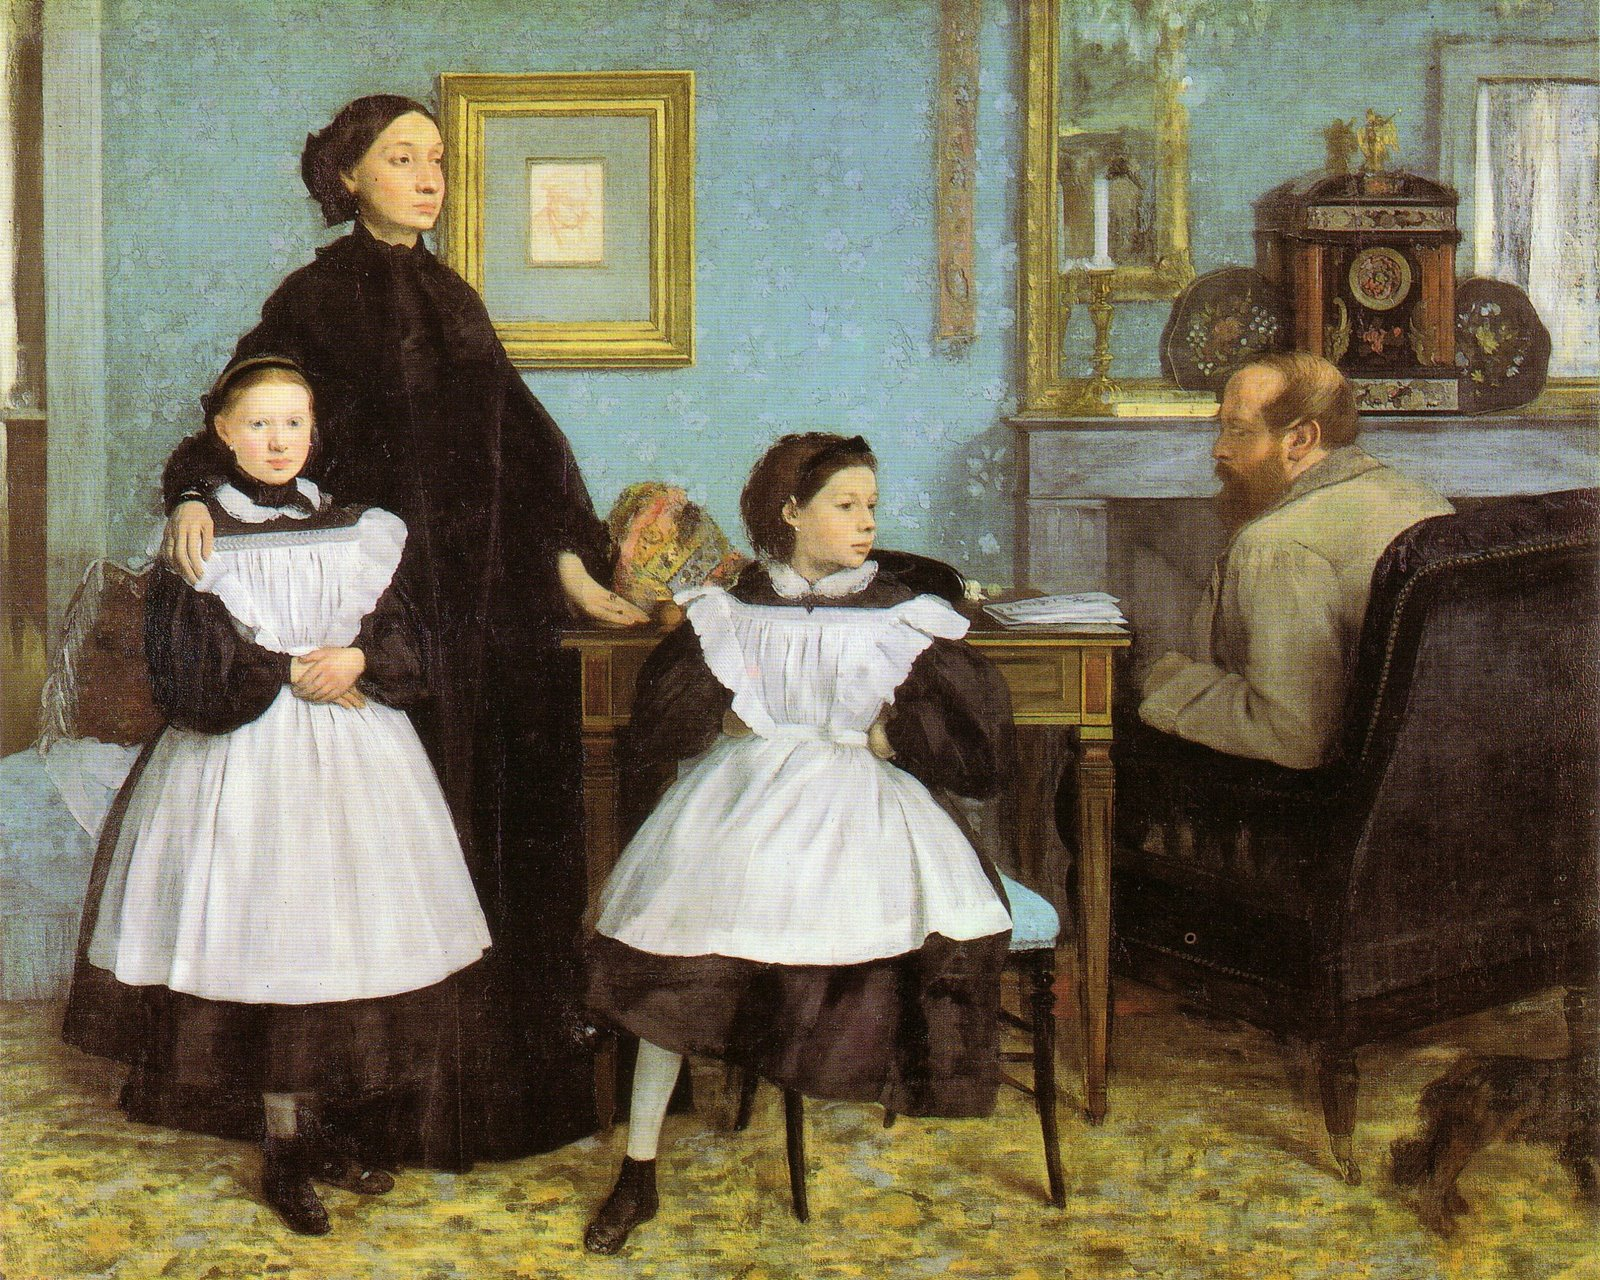 English: Bellelli family, paint of Edgar Degas.